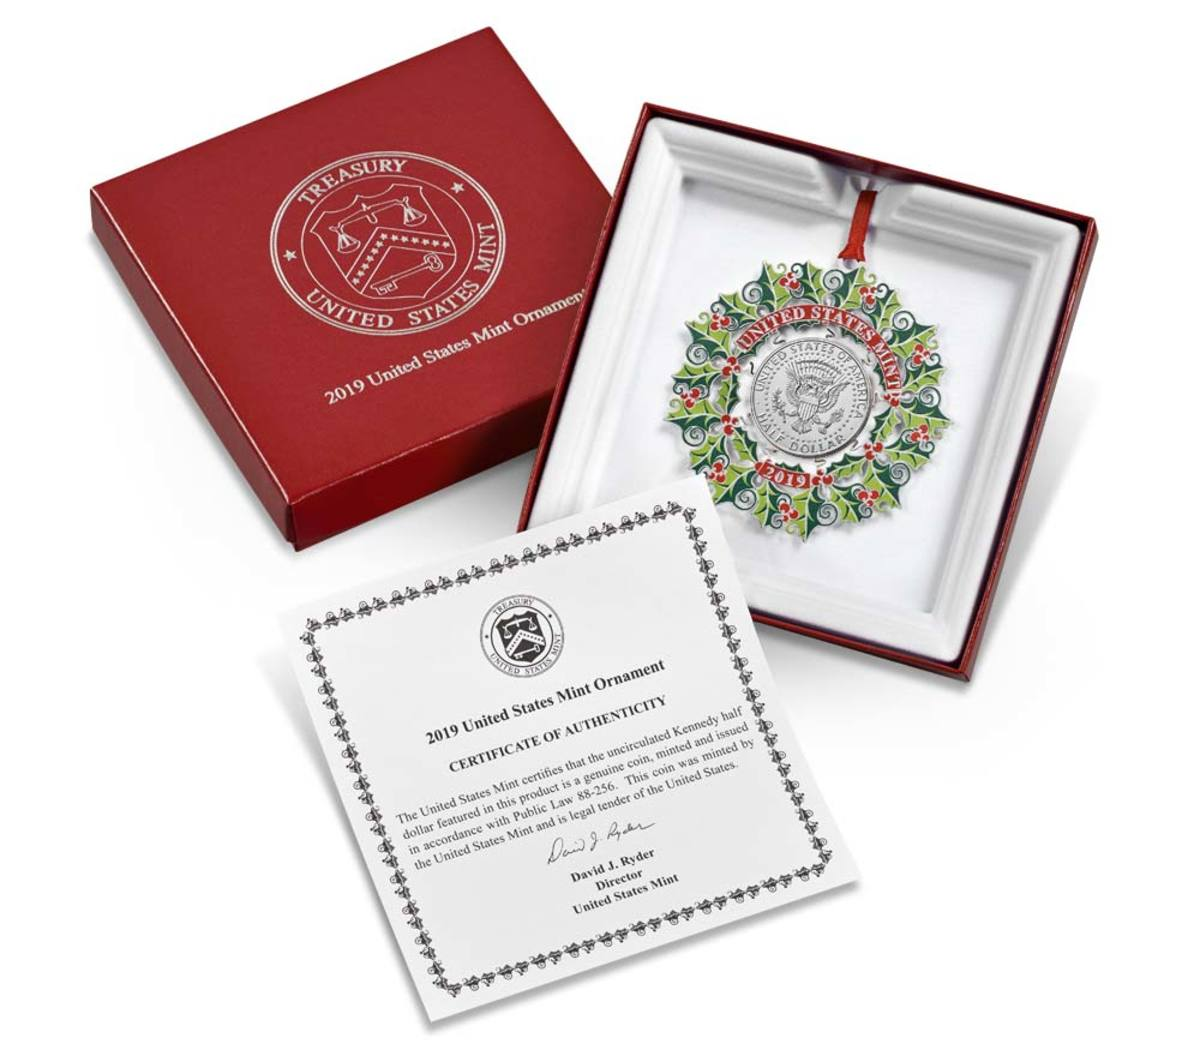 US Mint Ornament packaging